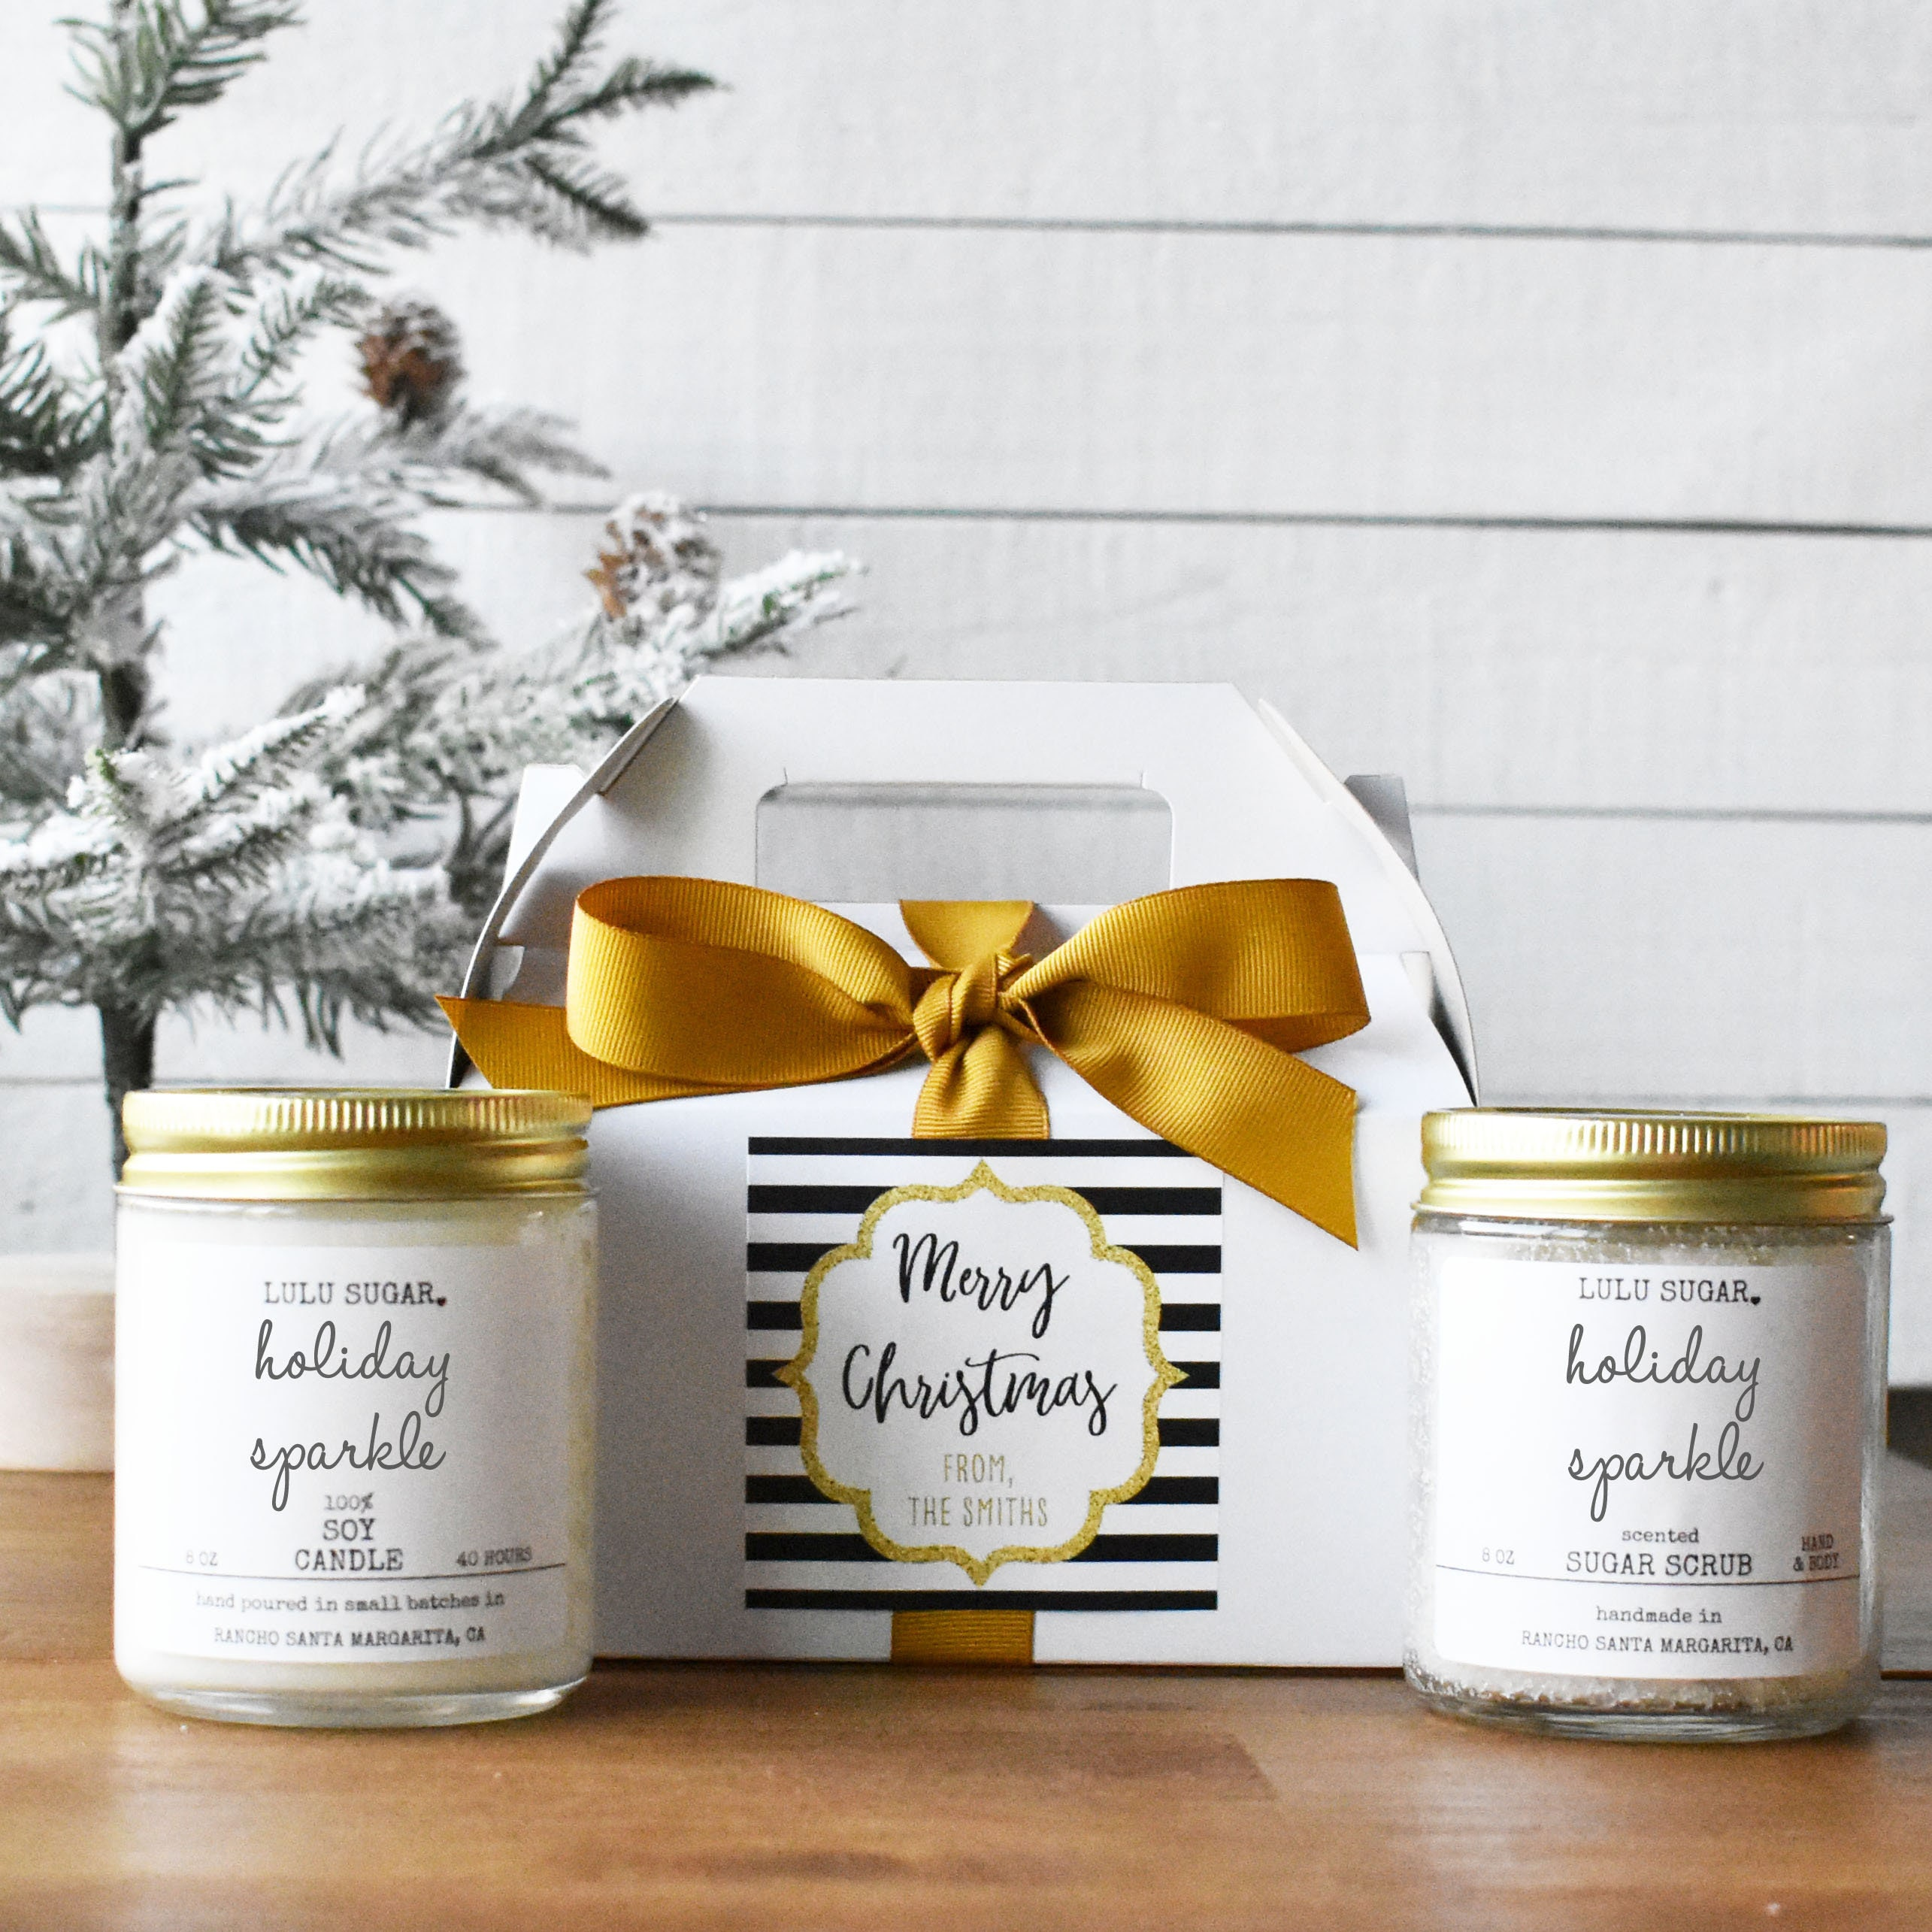 Candle and Sugar Scrub Gift Set - Boxed with Sparkle Merry